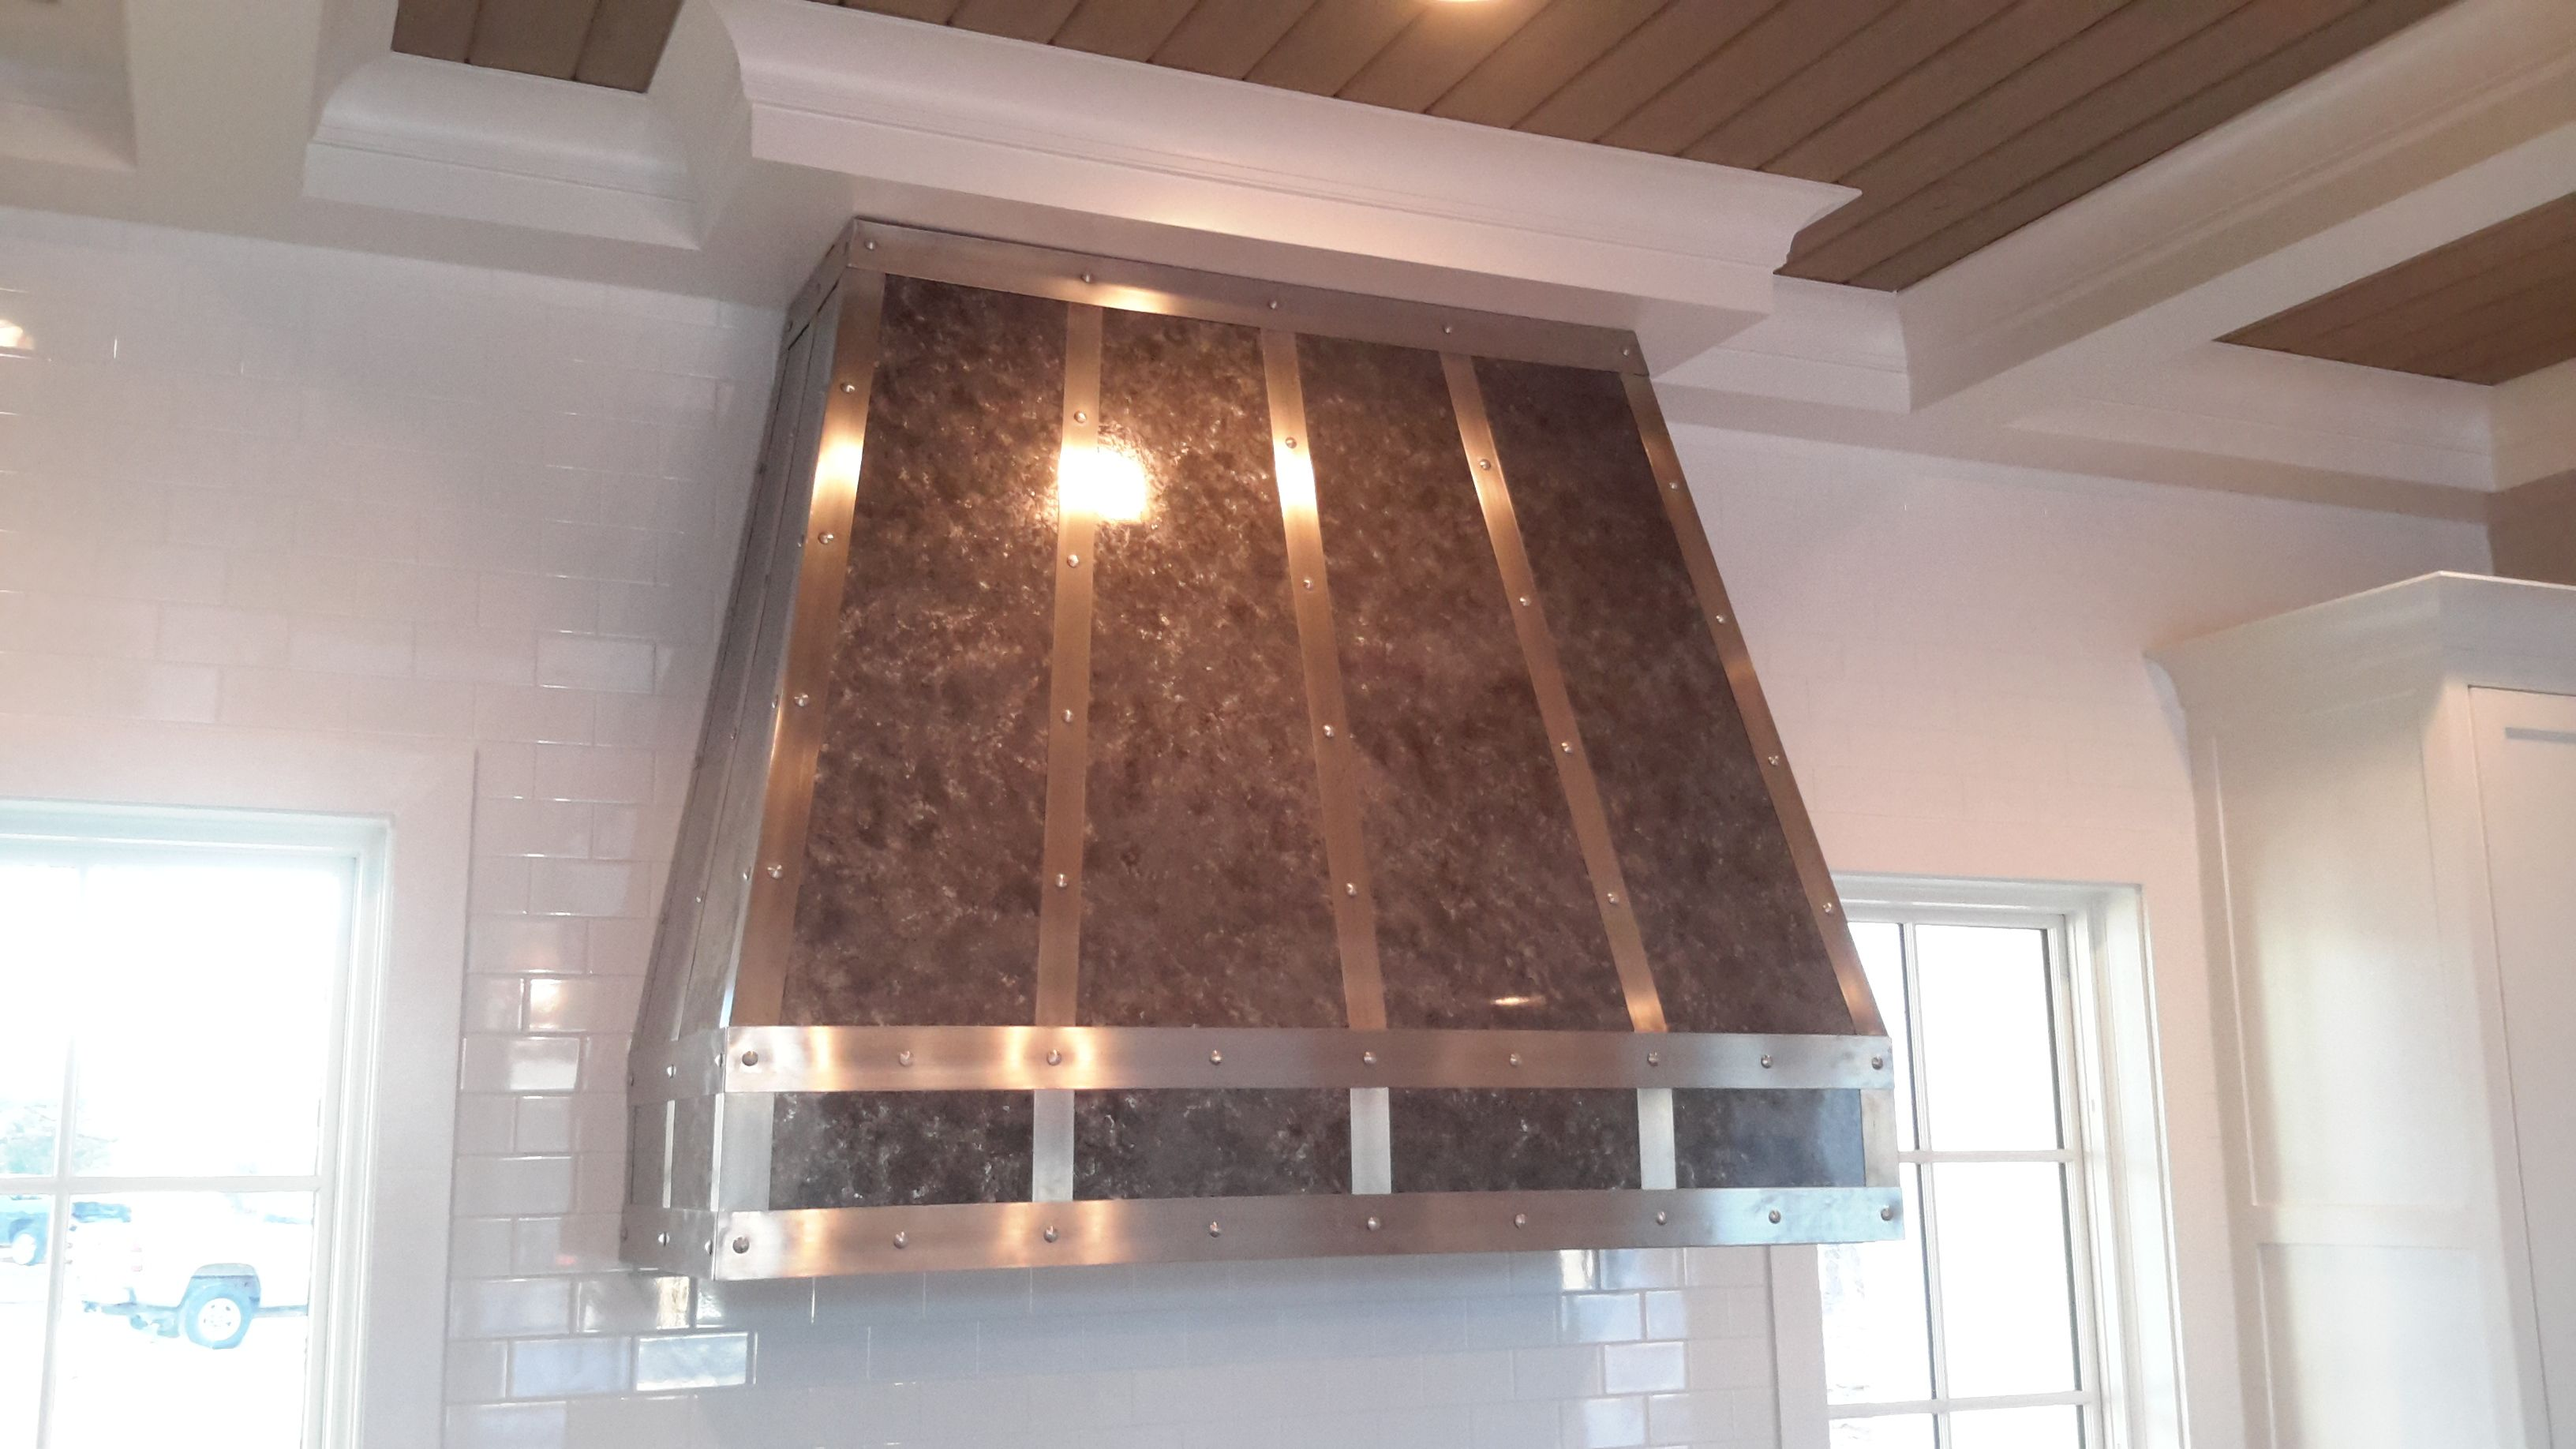 chinese kitchen range hood shelves for cabinets buy a handmade the herlitz custom zinc and stainless